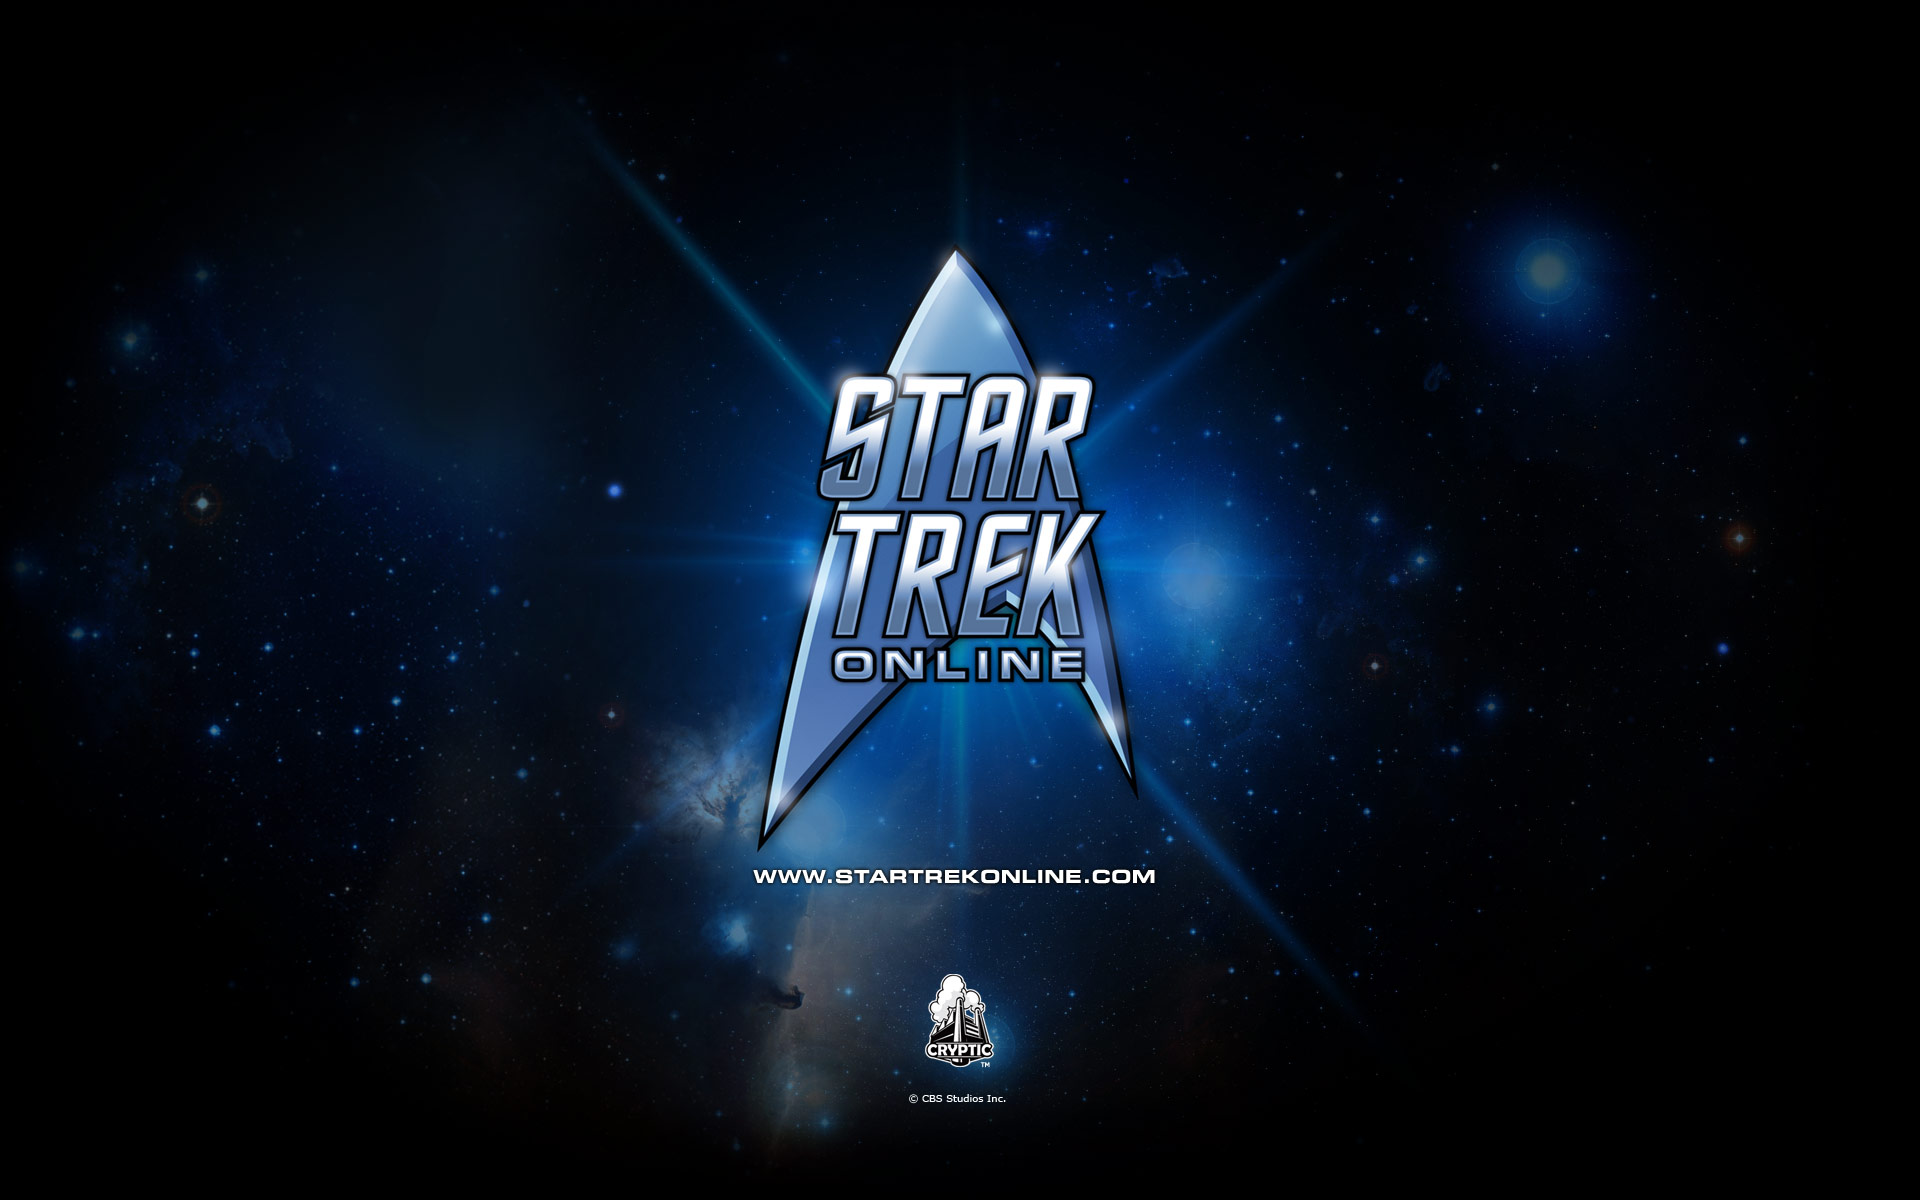 star trek online wallpapers backgrounds mobile 1920x1200 1920x1200